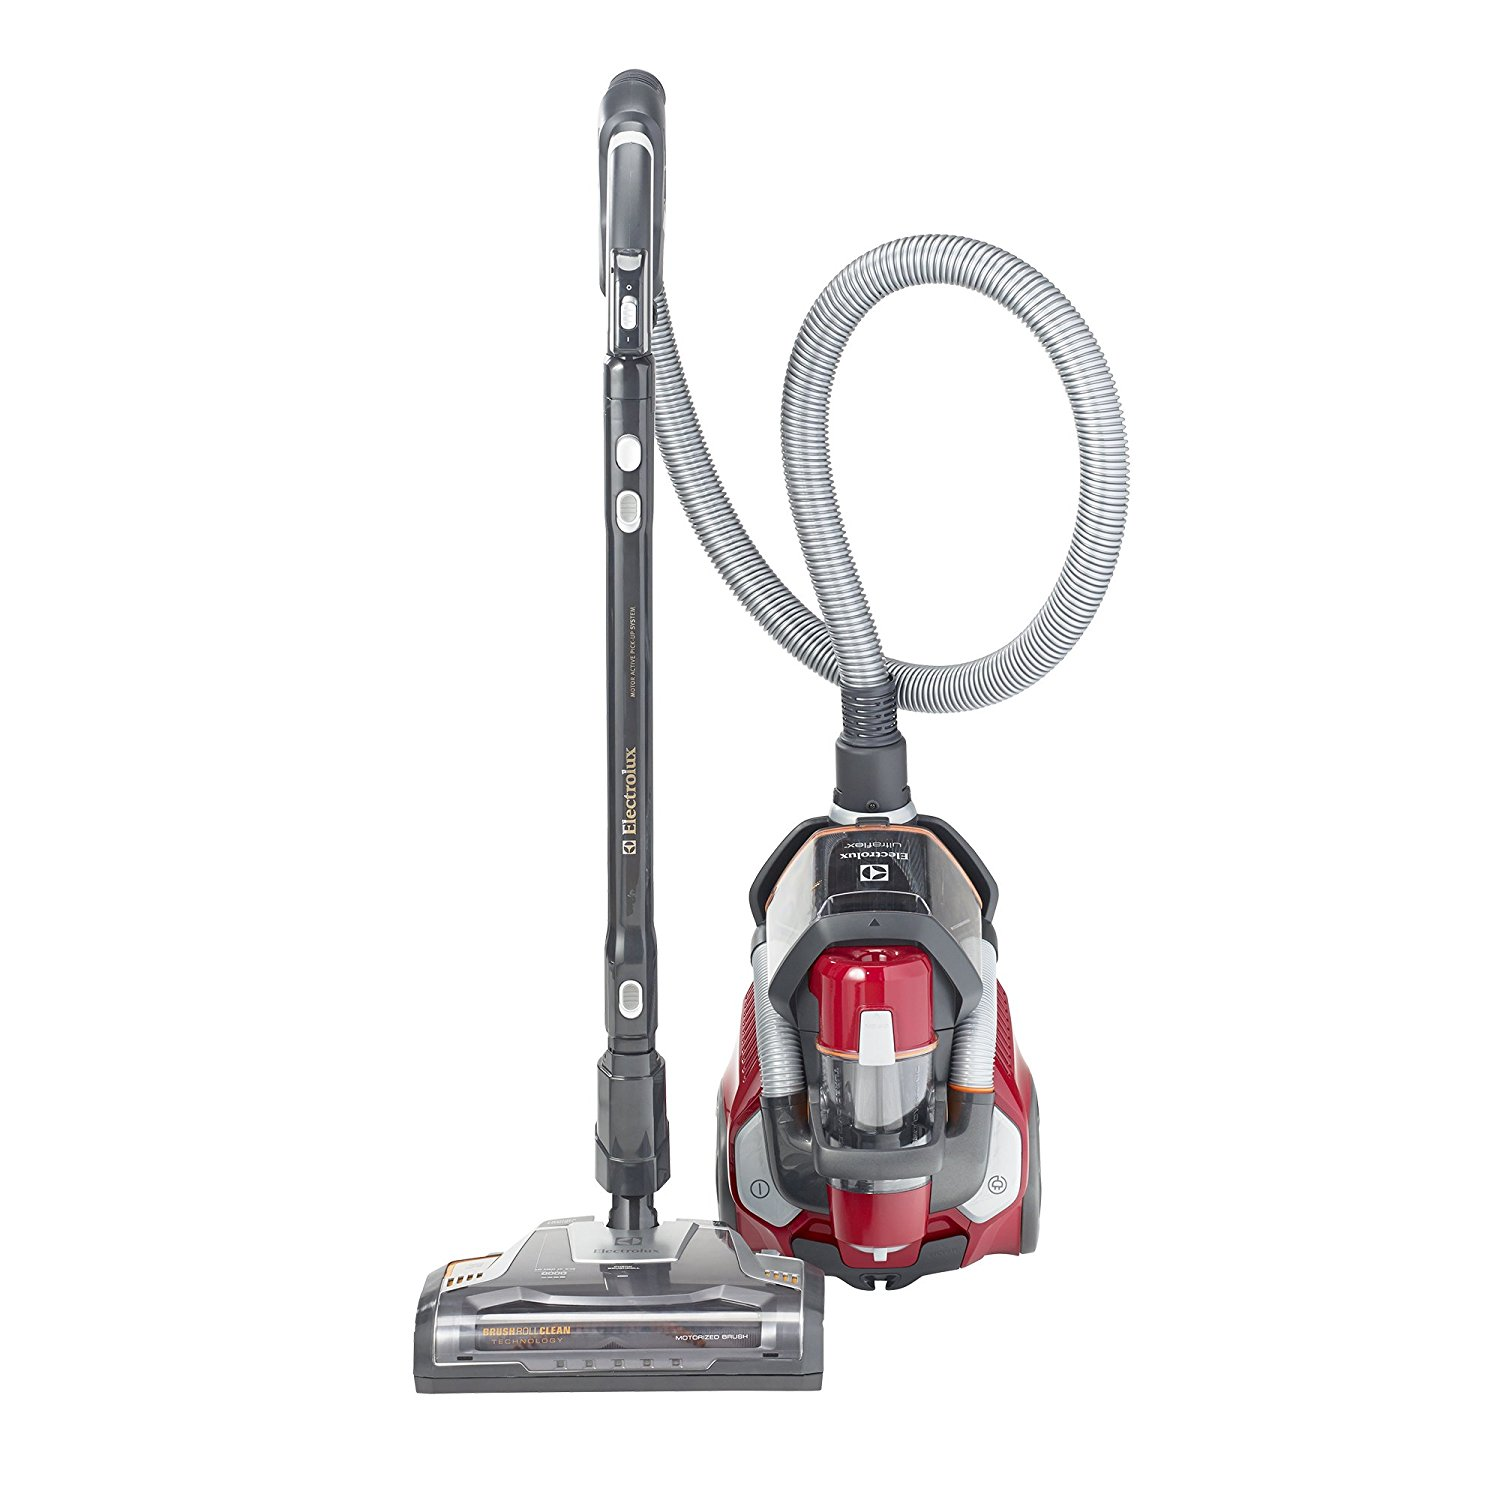 Best Canister Vacuum For Hardwood Floors the 3 best canister vacuum for hardwood floors Electrolux El4335b Corded Ultra Flex Canister Vacuum